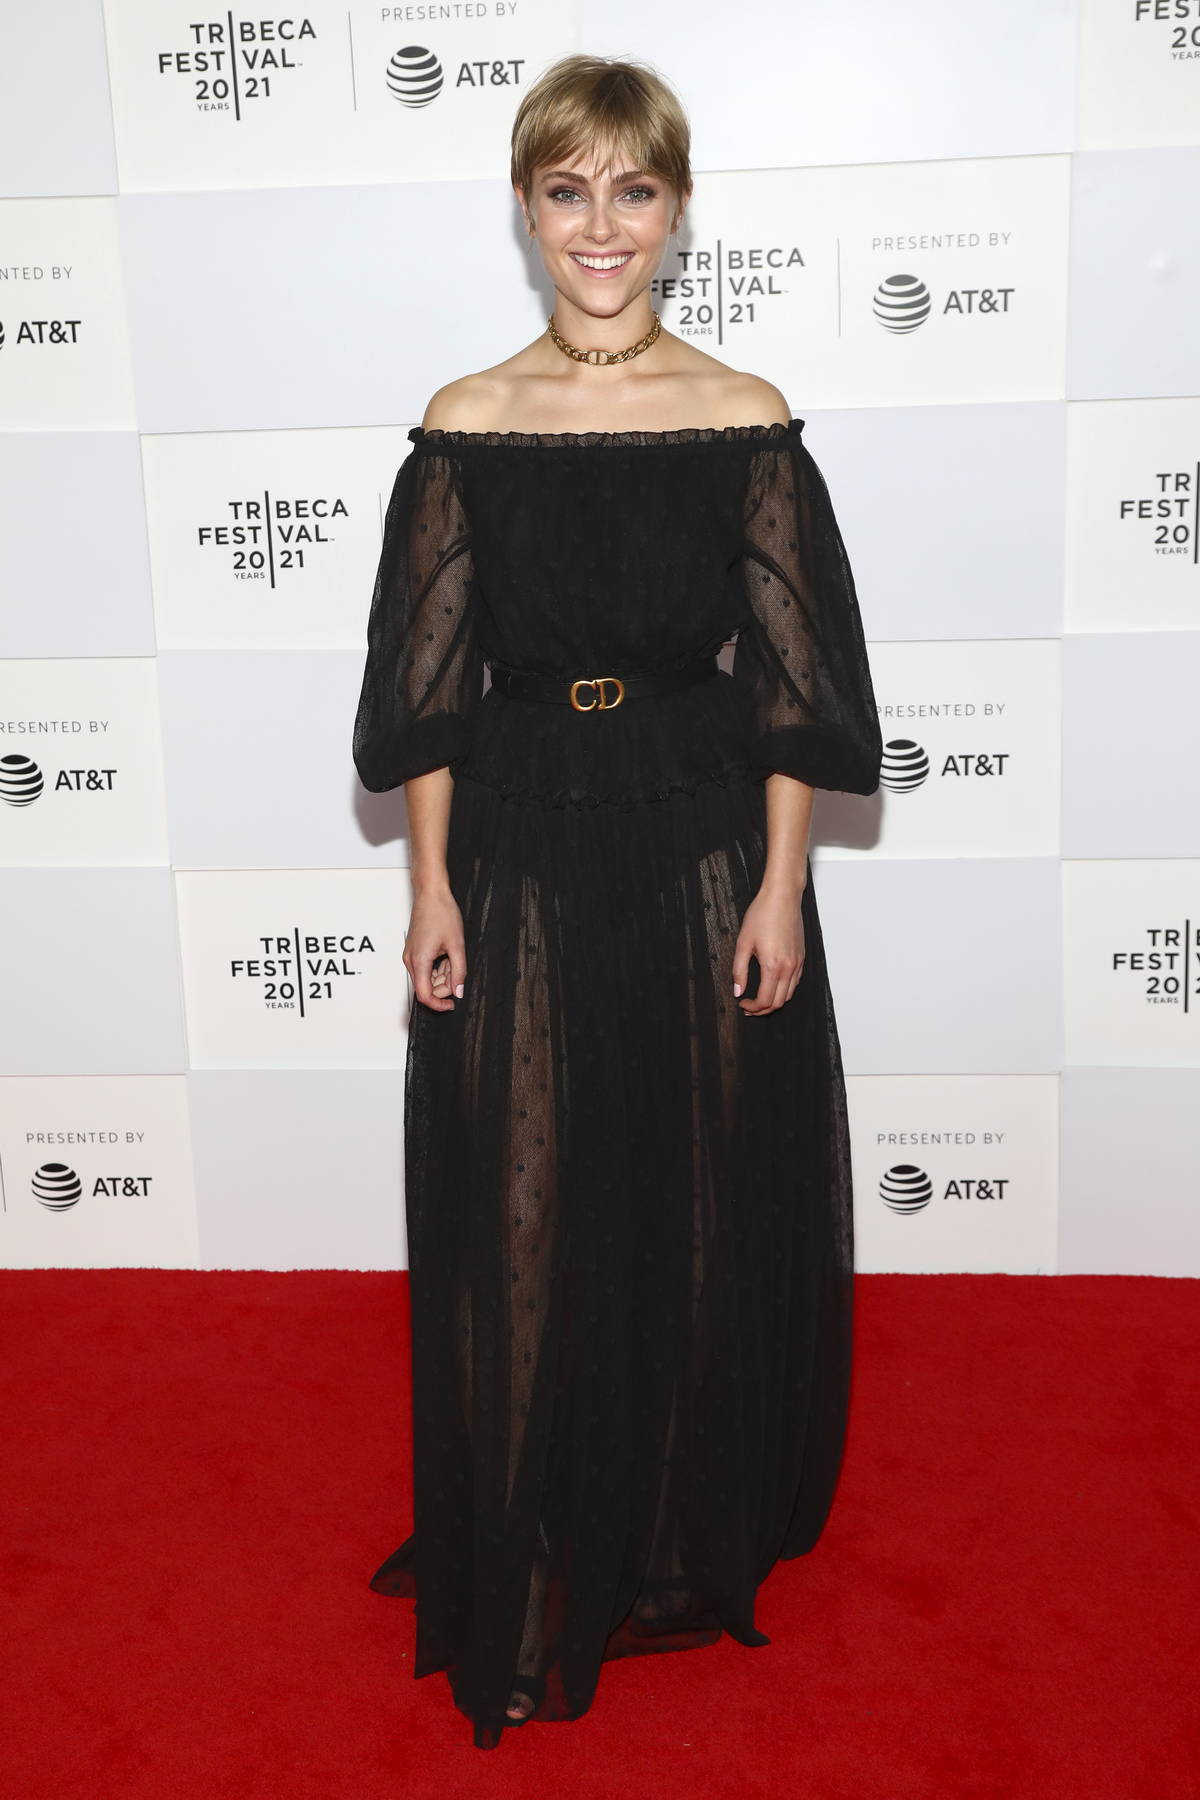 AnnaSophia Robb attends the Premiere of Dr. Death during the 2021 Tribeca Film Festival in New York City